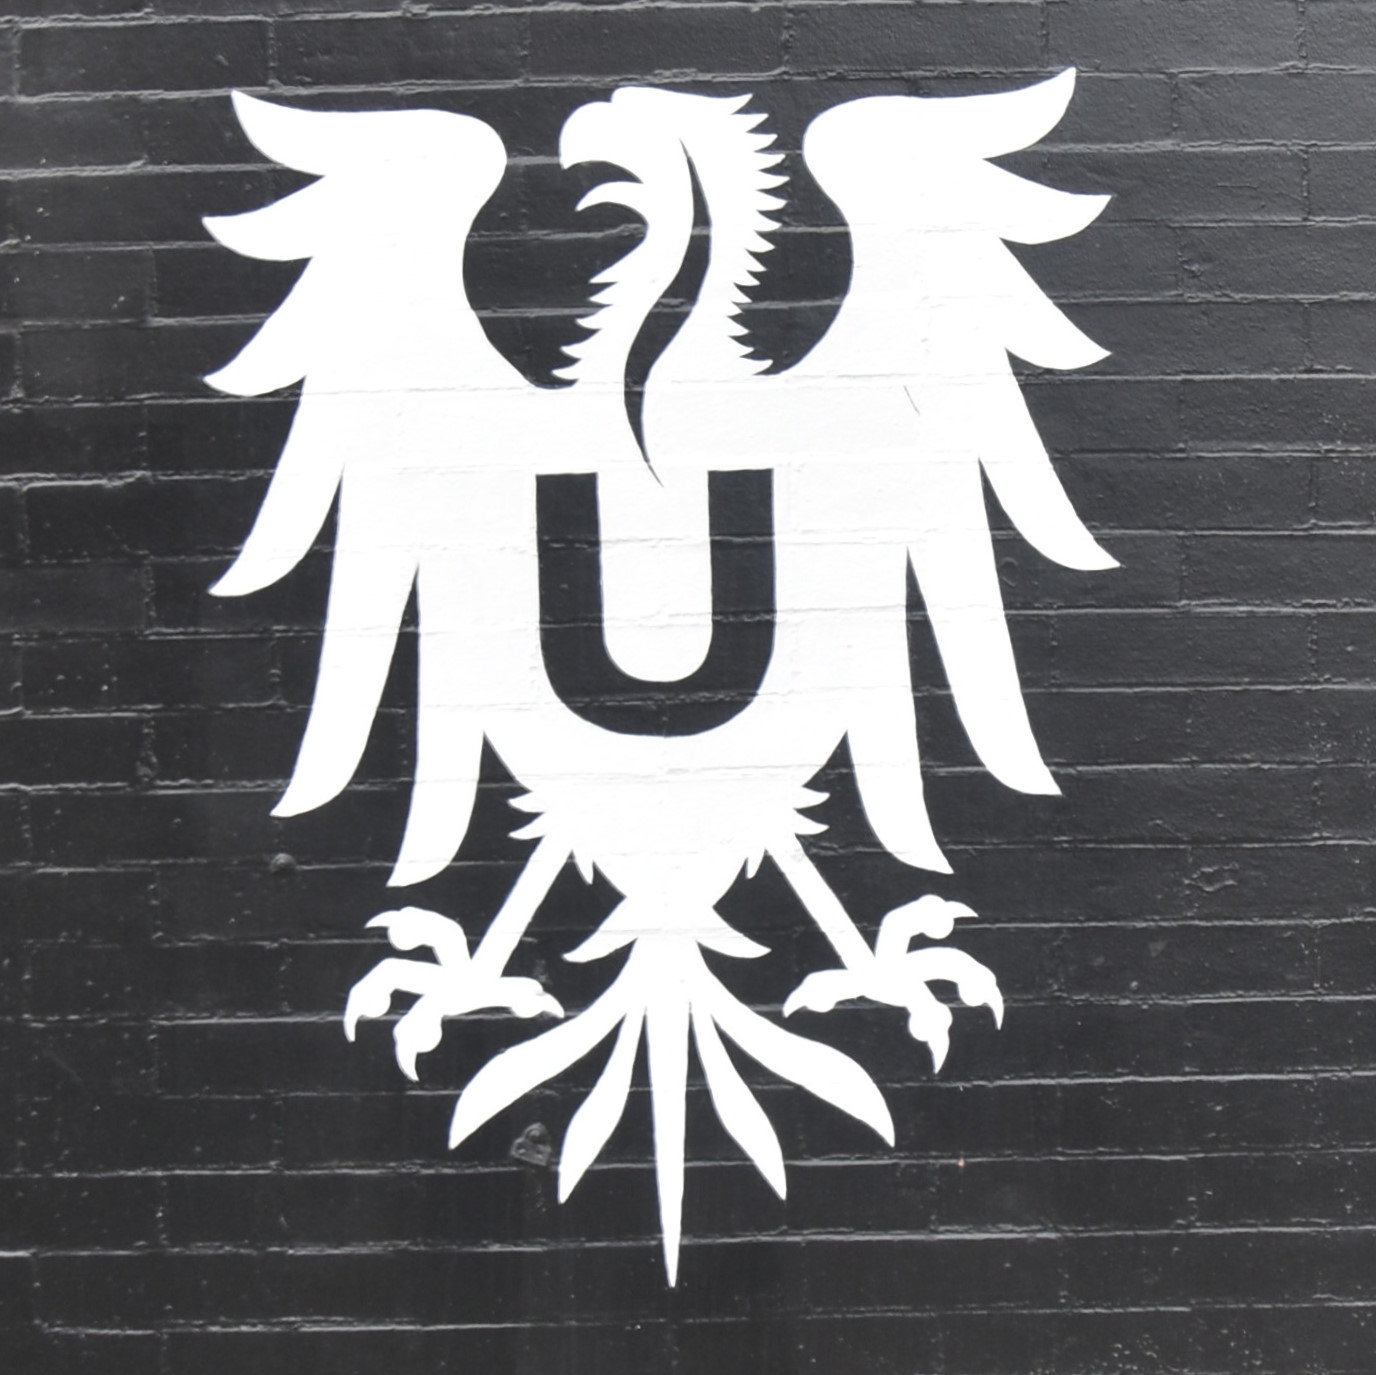 The Ultimo Coffee eagle, painted in white on the side of the Rittenhouse branch in Philadelphia.